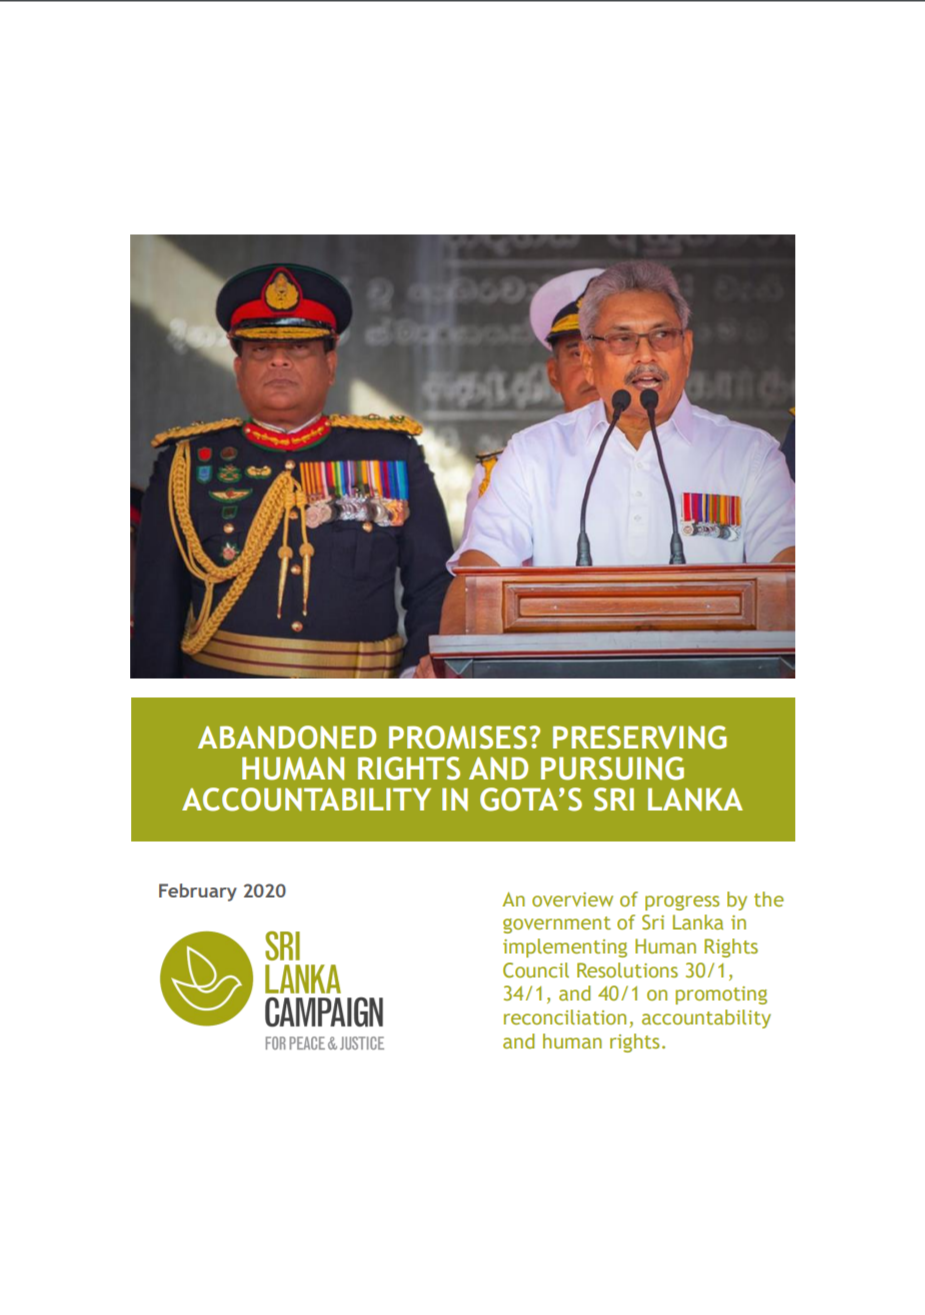 Abandoned Promises? Preserving Human Rights and Pursuing Accountability in Gota's Sri Lanka, February 2020